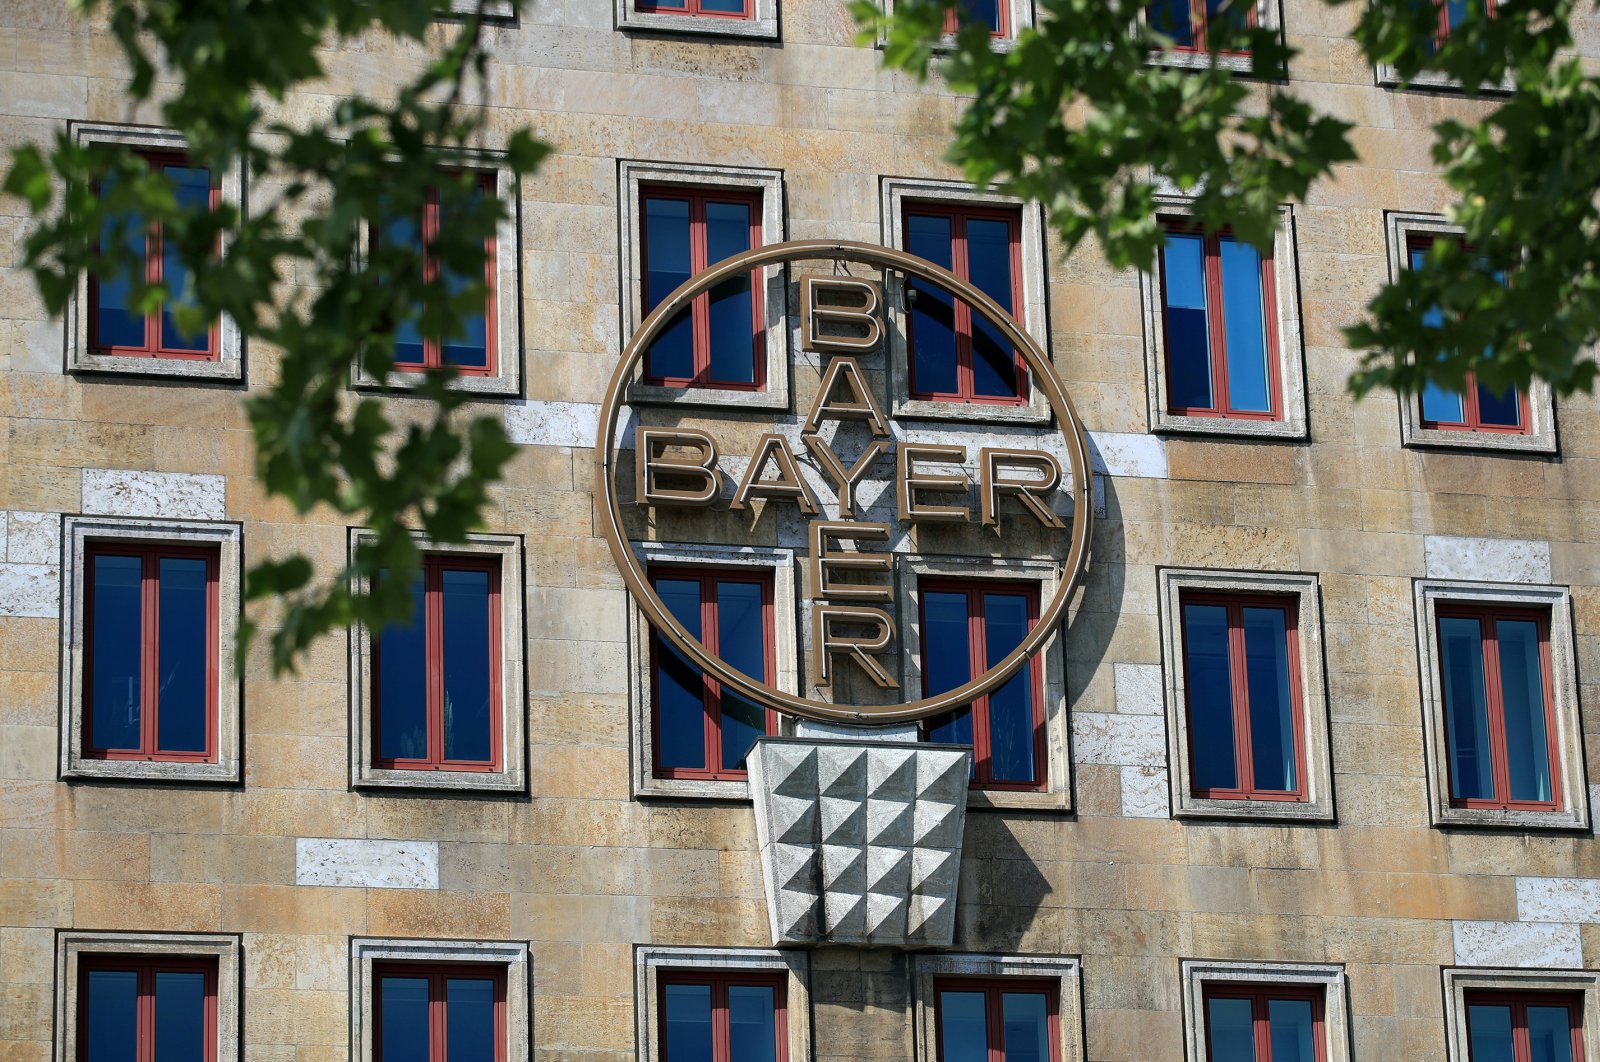 The logo of Bayer AG is pictured at the facade of the historic headquarters of the German pharmaceutical and chemical maker in Leverkusen, Germany, April 27, 2020. (Reuters Photo)